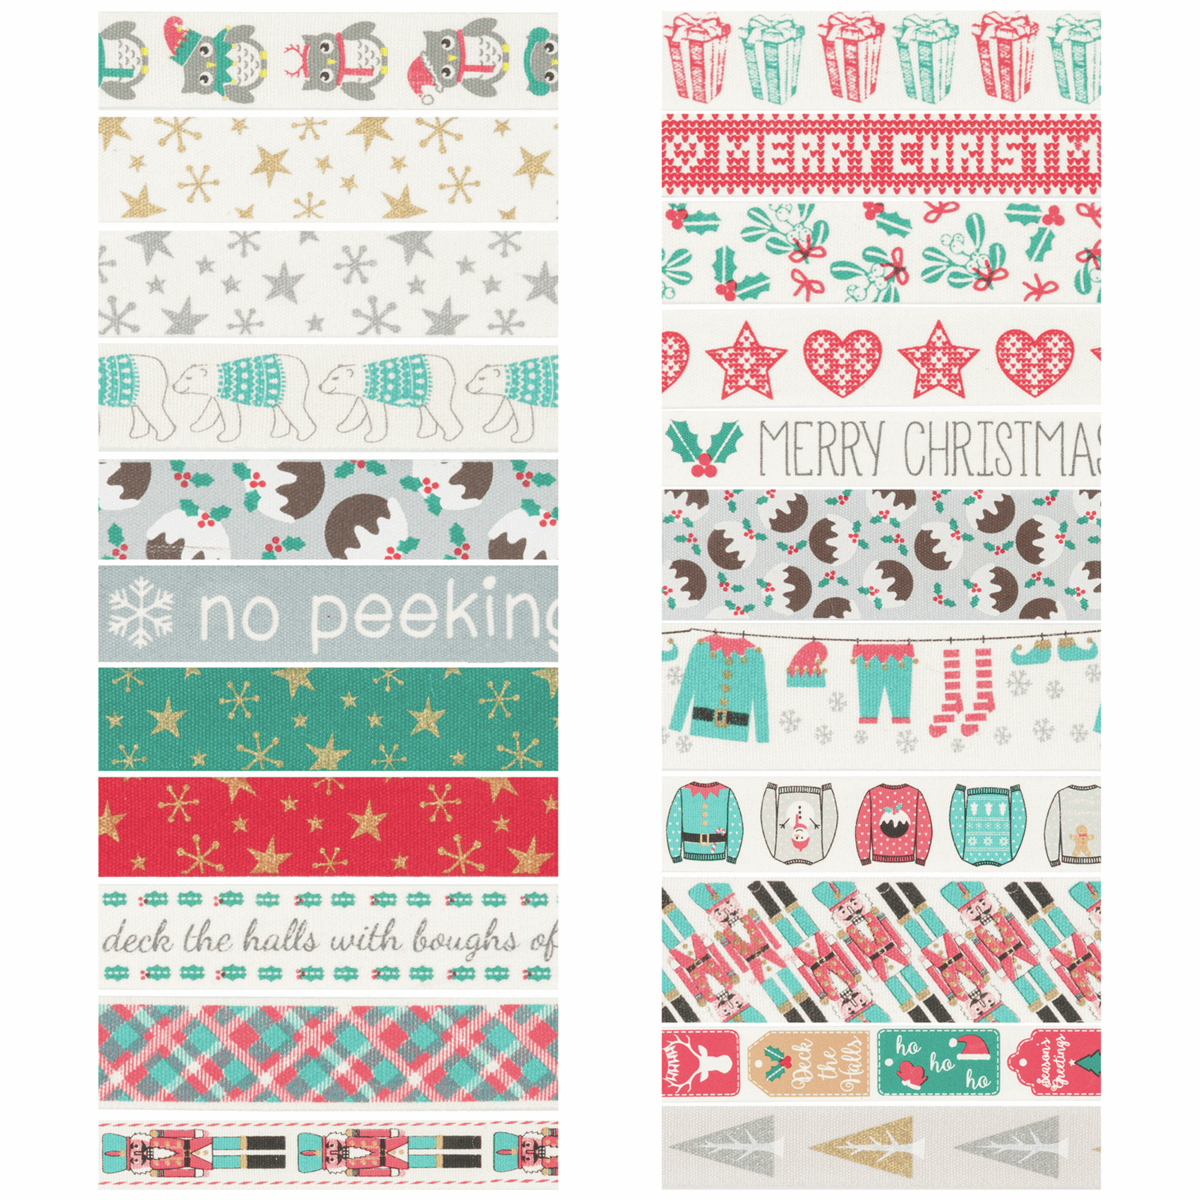 Picture of Bowtique Christmas Ribbons: 30% off Deal